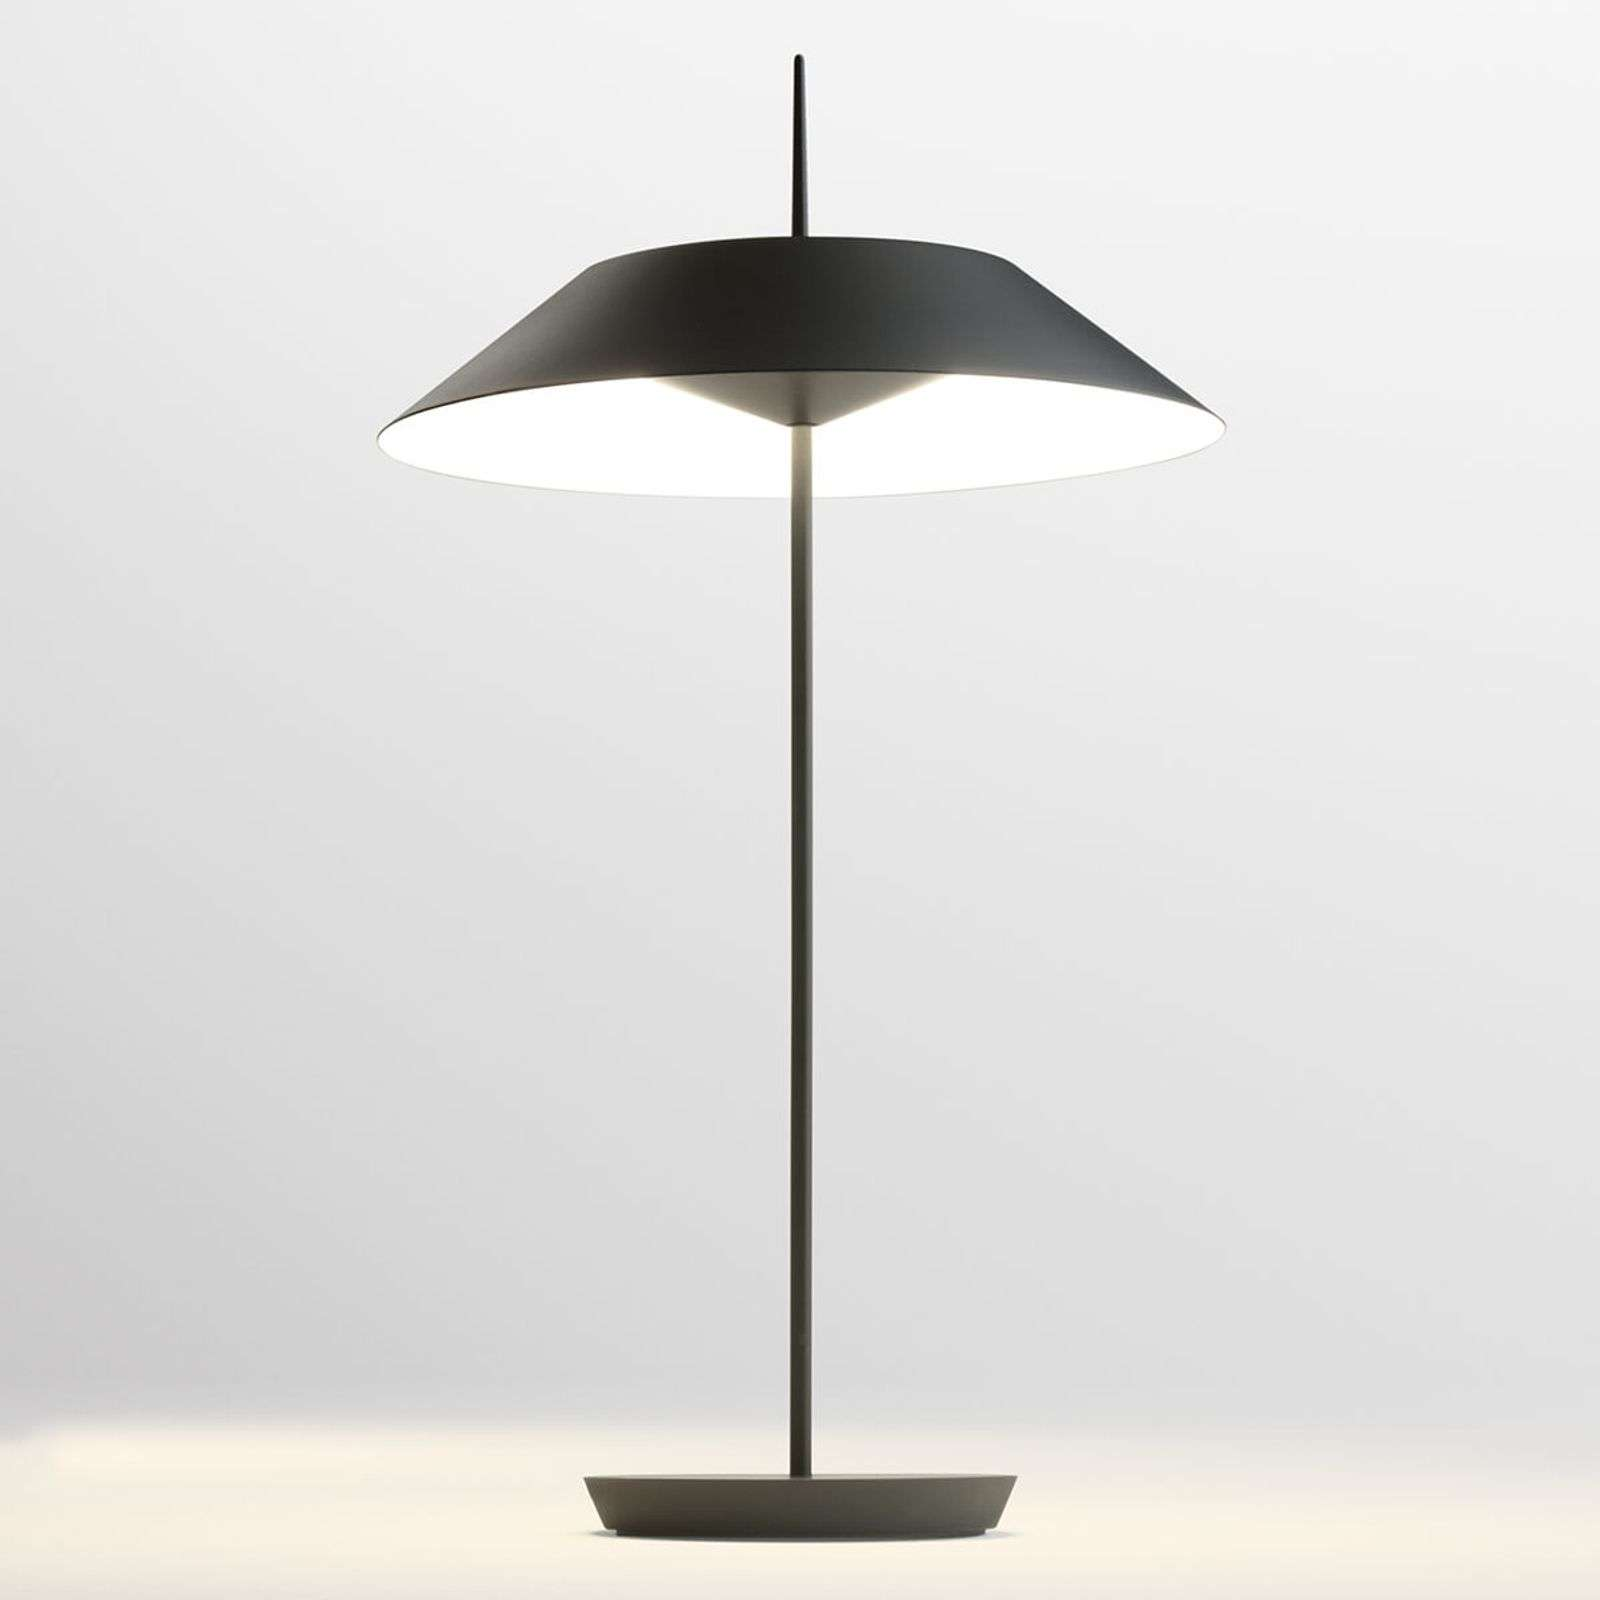 Vibia Mayfair lámpara LED de mesa, gris grafito